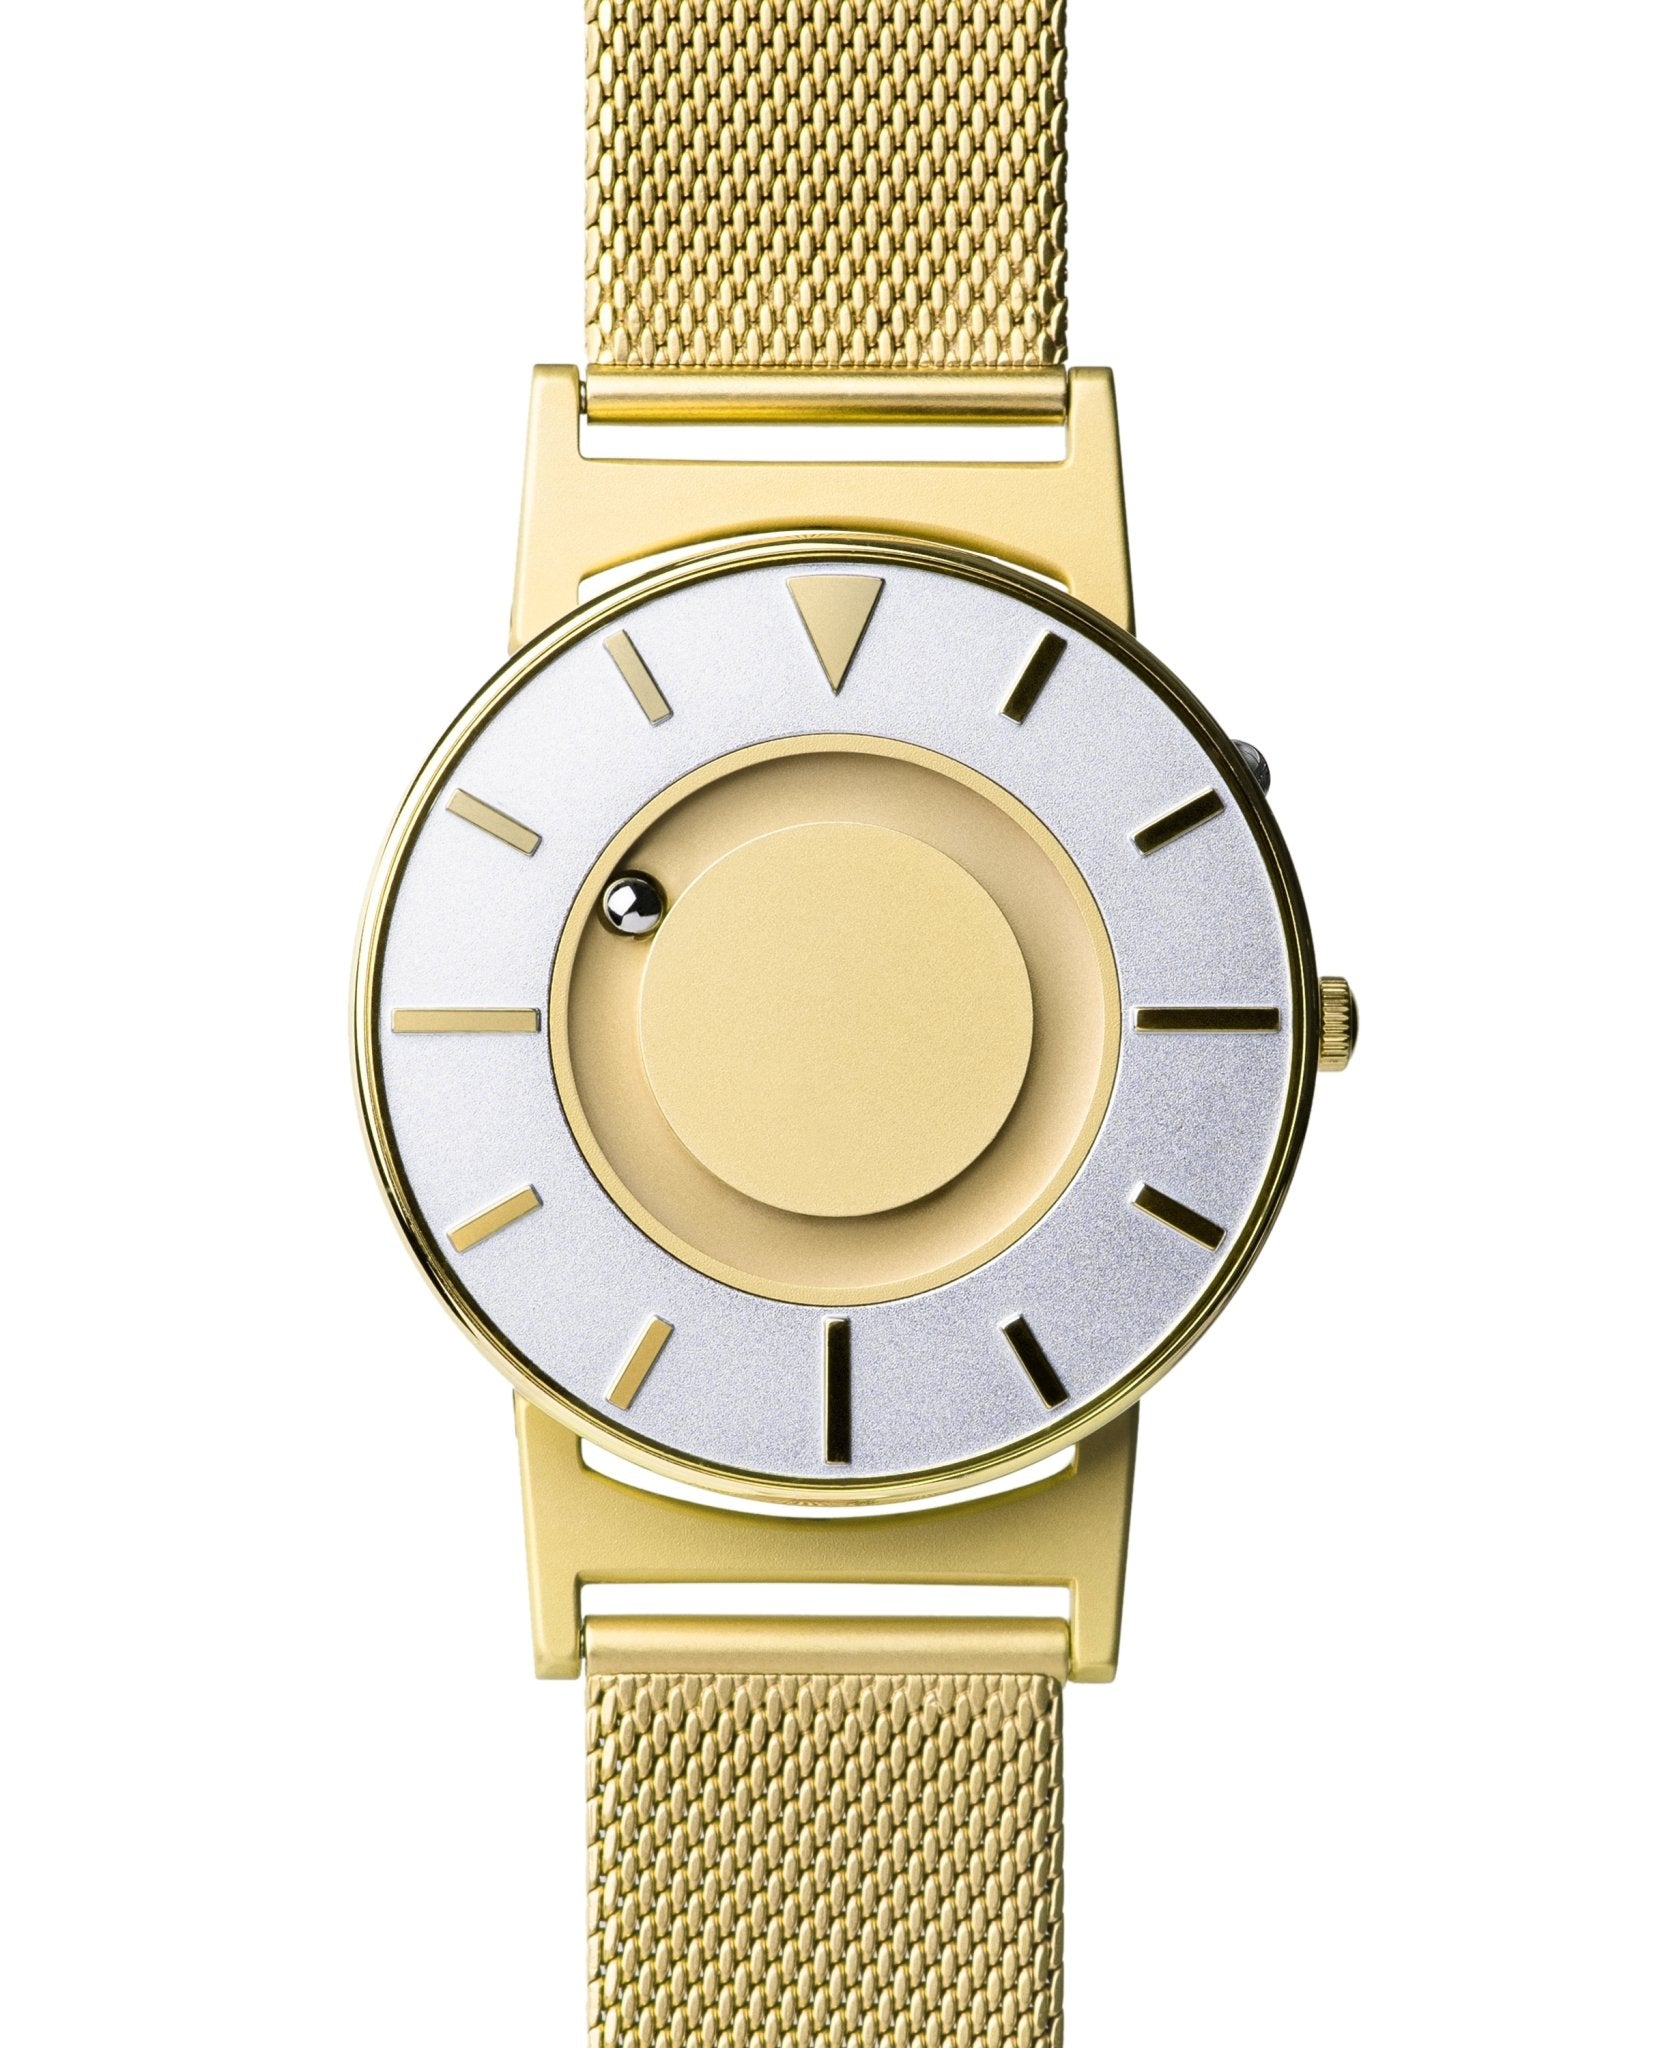 Eone Bradley Gold Mesh - Watches & Crystals